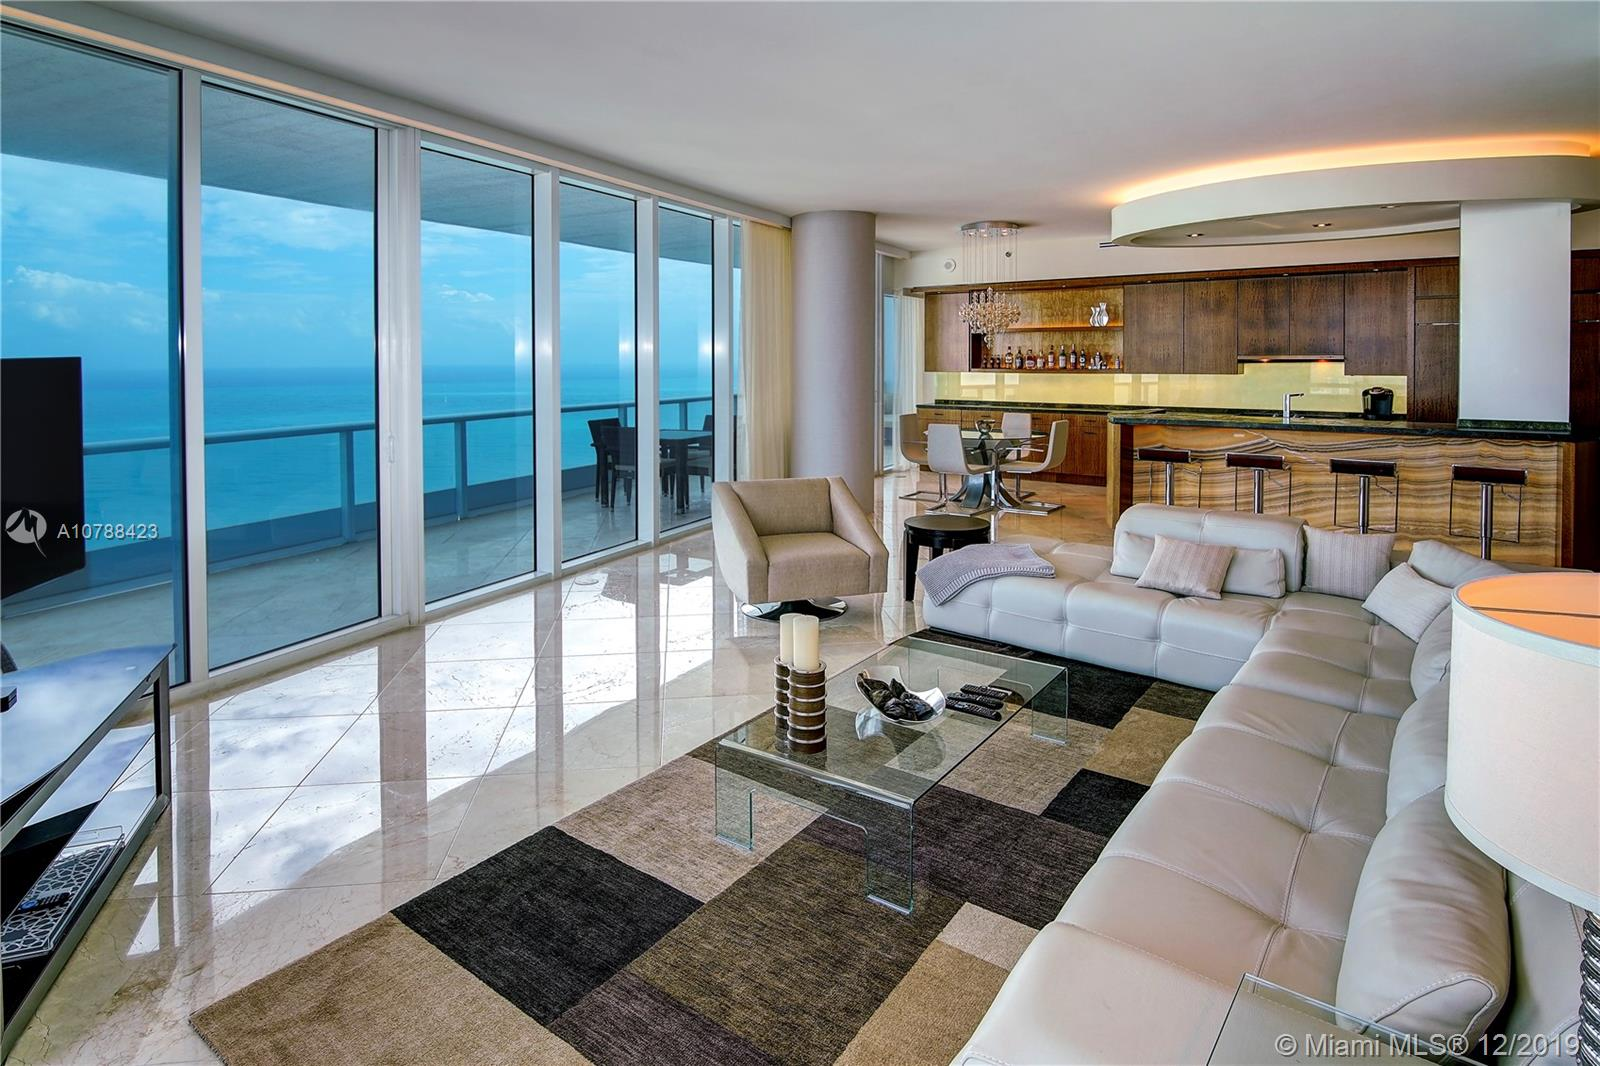 100 S Pointe Drive, Unit #3806 Luxury Real Estate